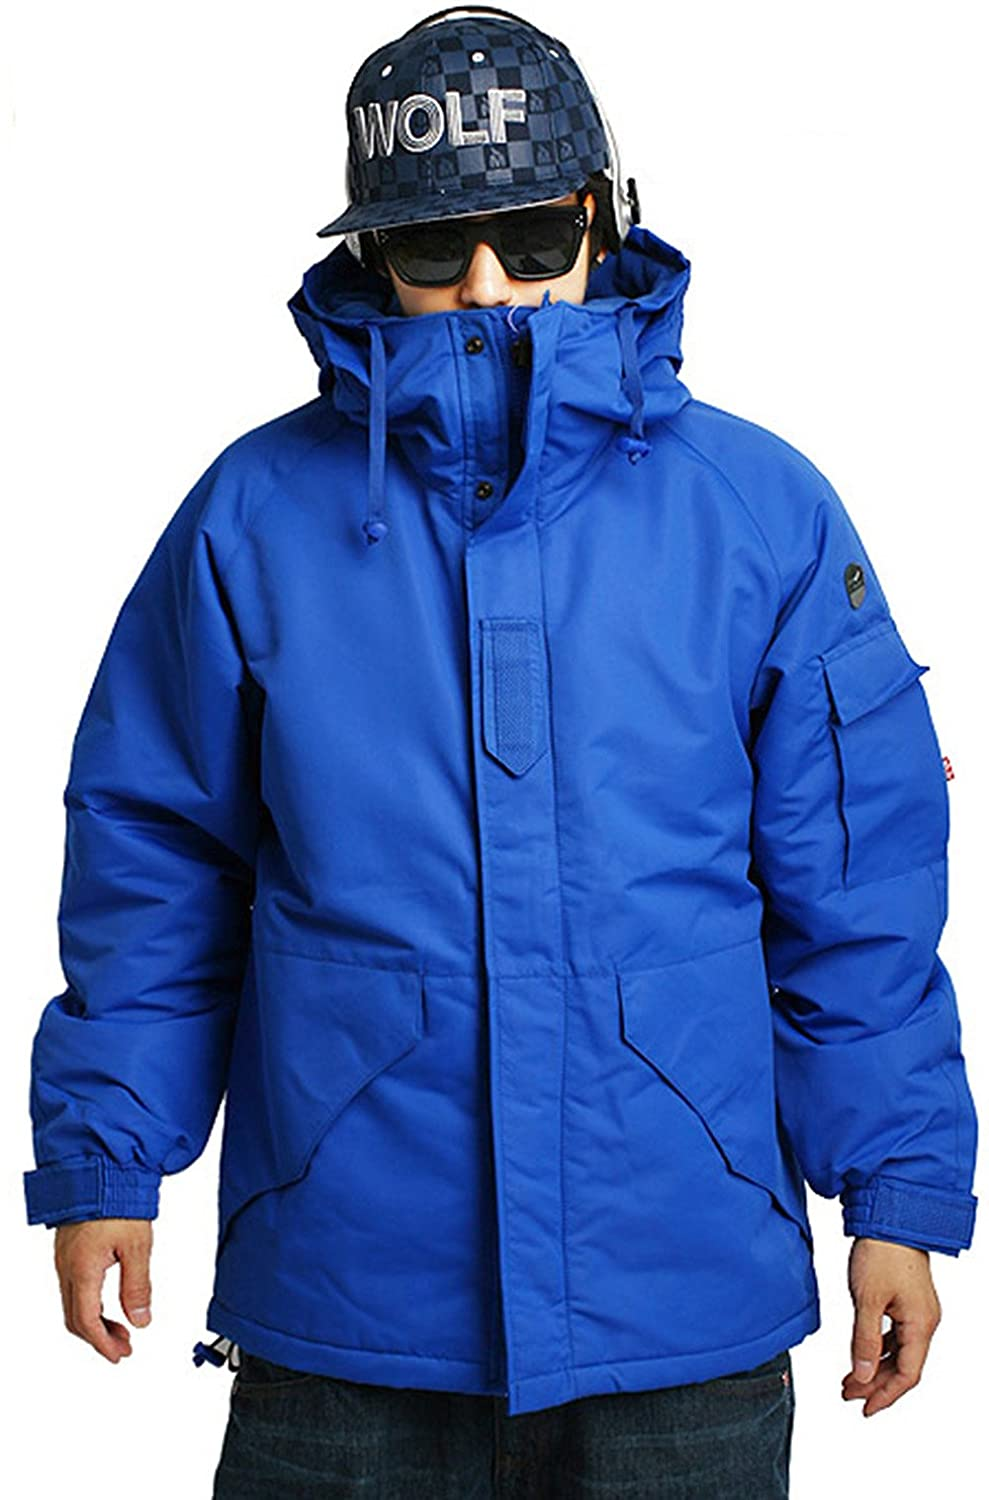 Mens SOUTH PLAY Waterproof Ski SnowBoard Wear Jacket Jumper SOLID BLUE